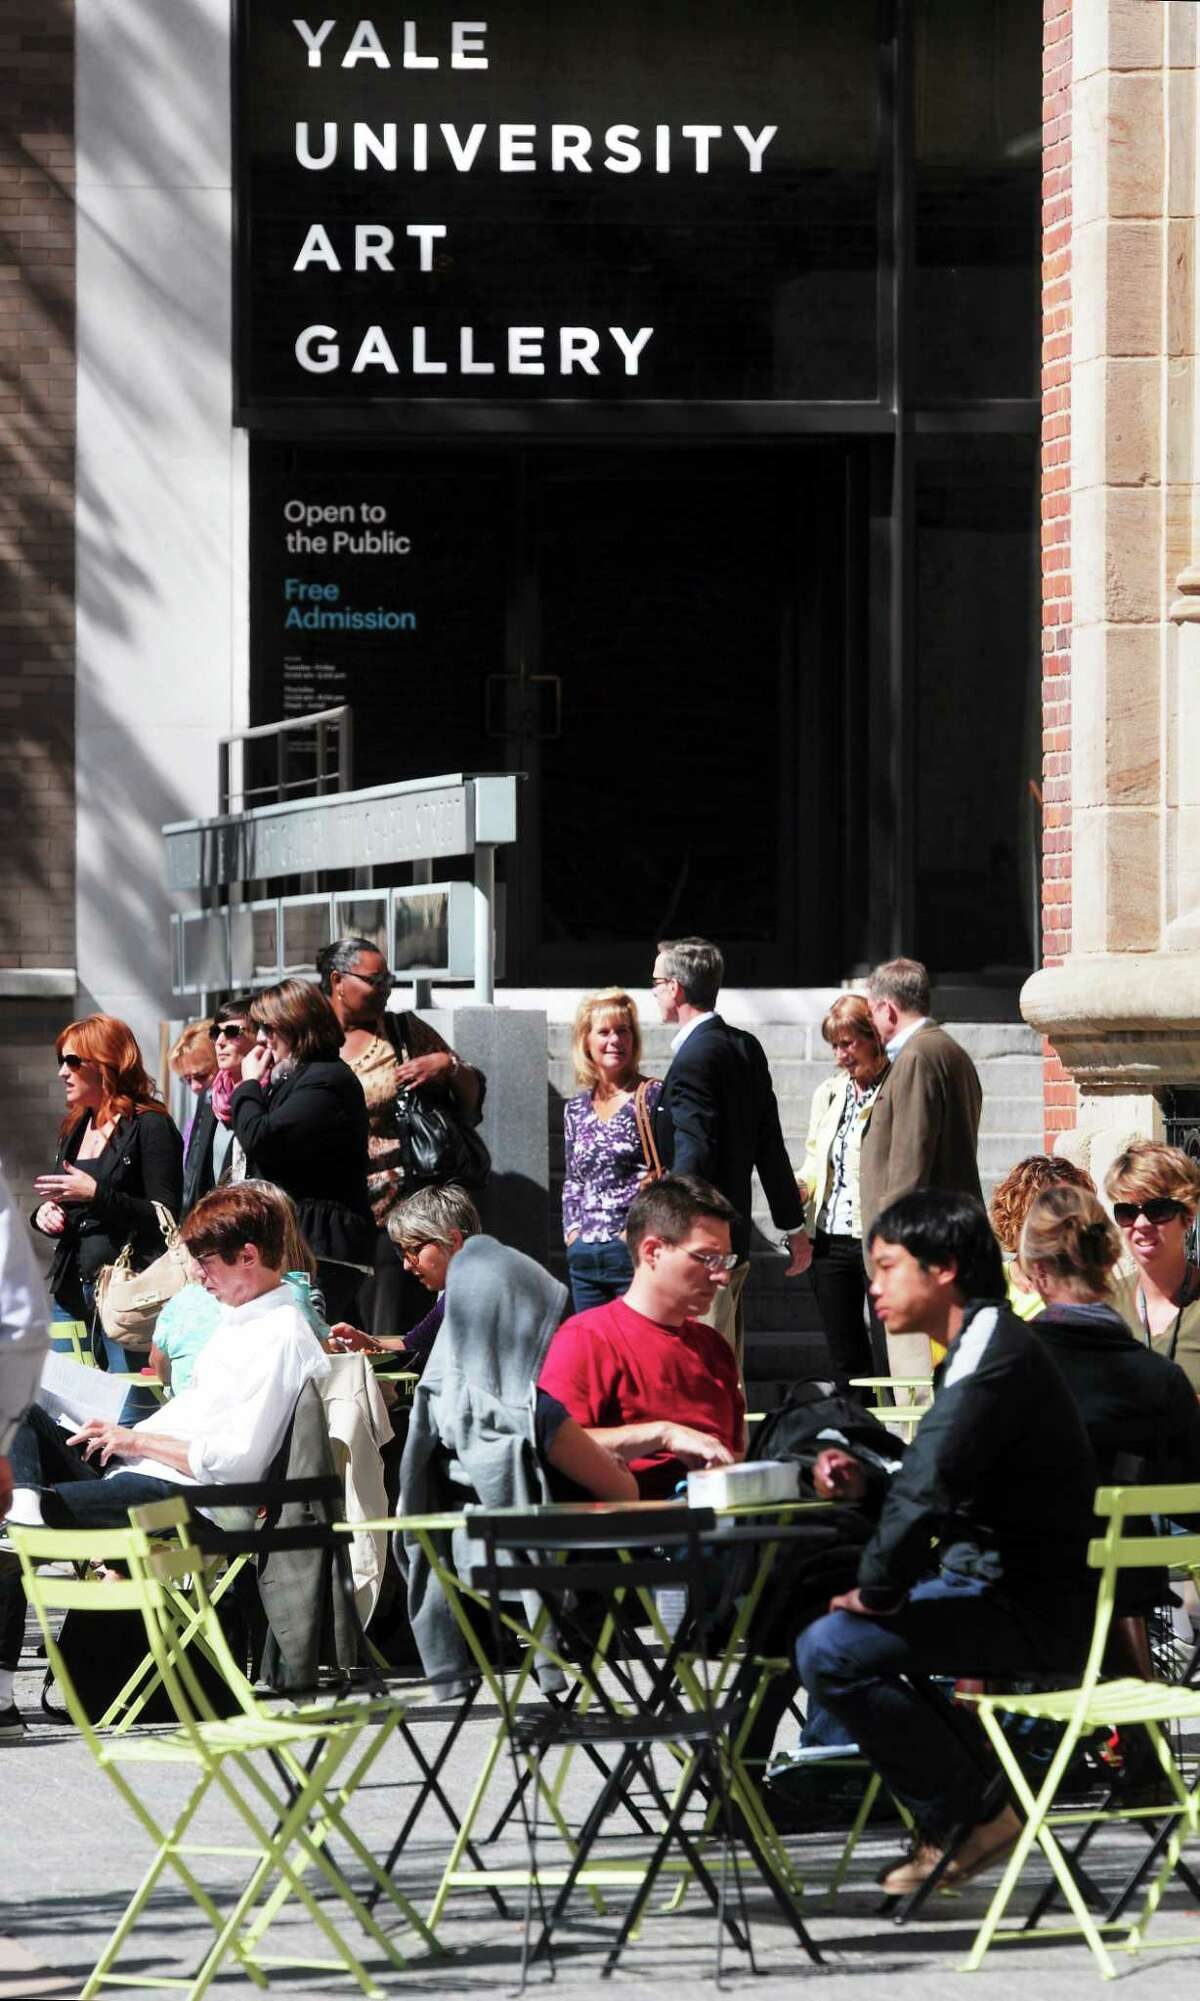 (Mara Lavitt - New Haven Register) September 24, 2013 New Haven. On a beautiful September day, the cafe tables outside the Yale Art Gallery were packed at lunchtime.